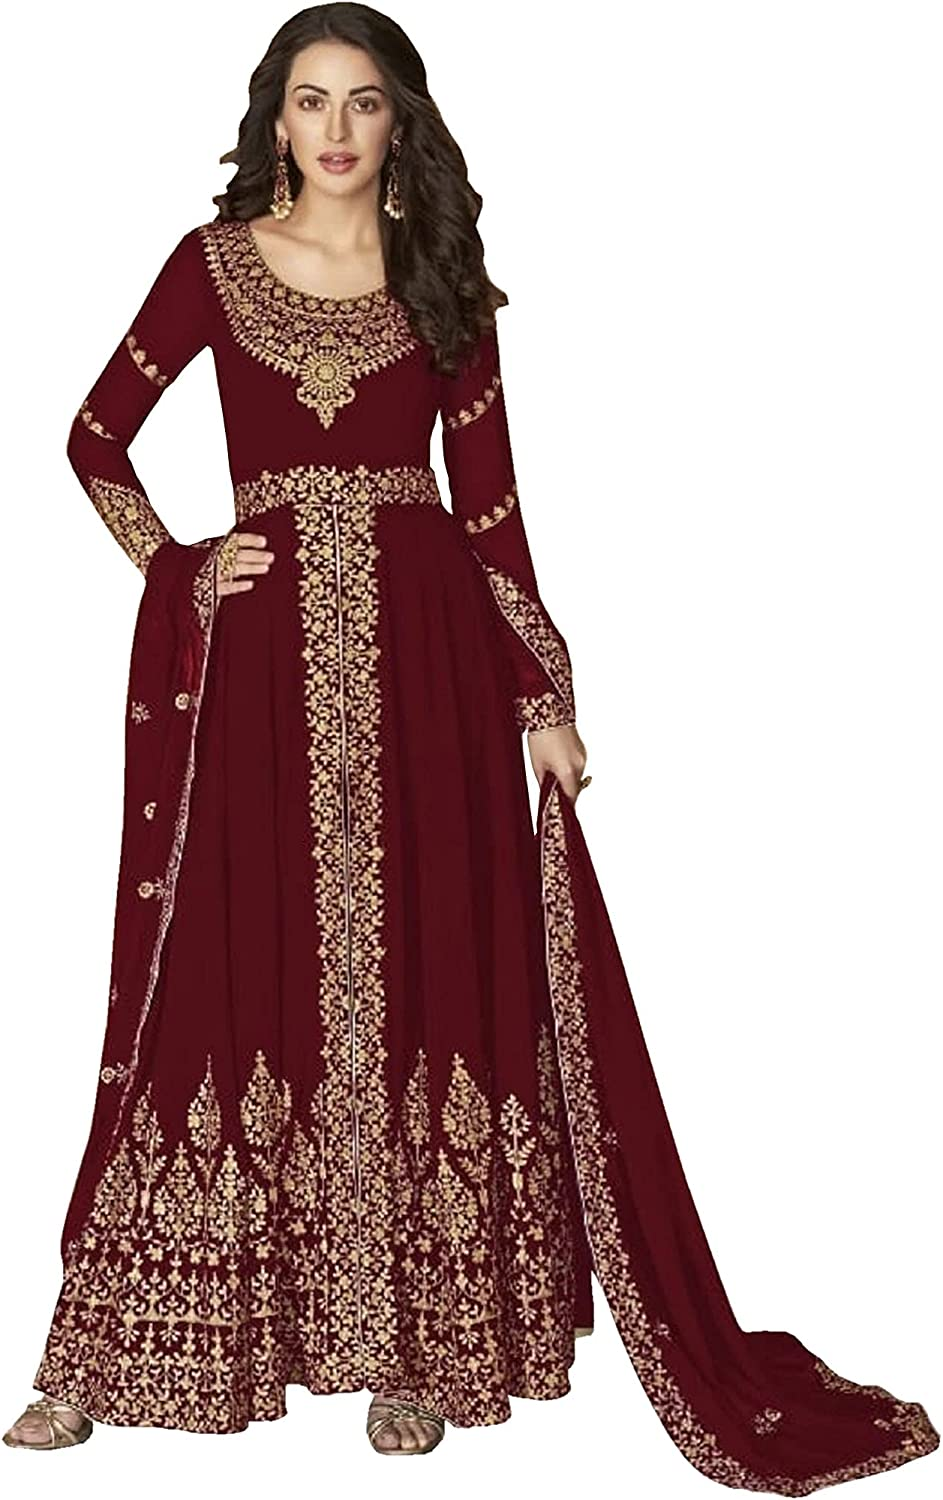 Special sale item Traditional Wear Style Salwar Suit 40% OFF Cheap Sale Stitched Embroidery Heav Work